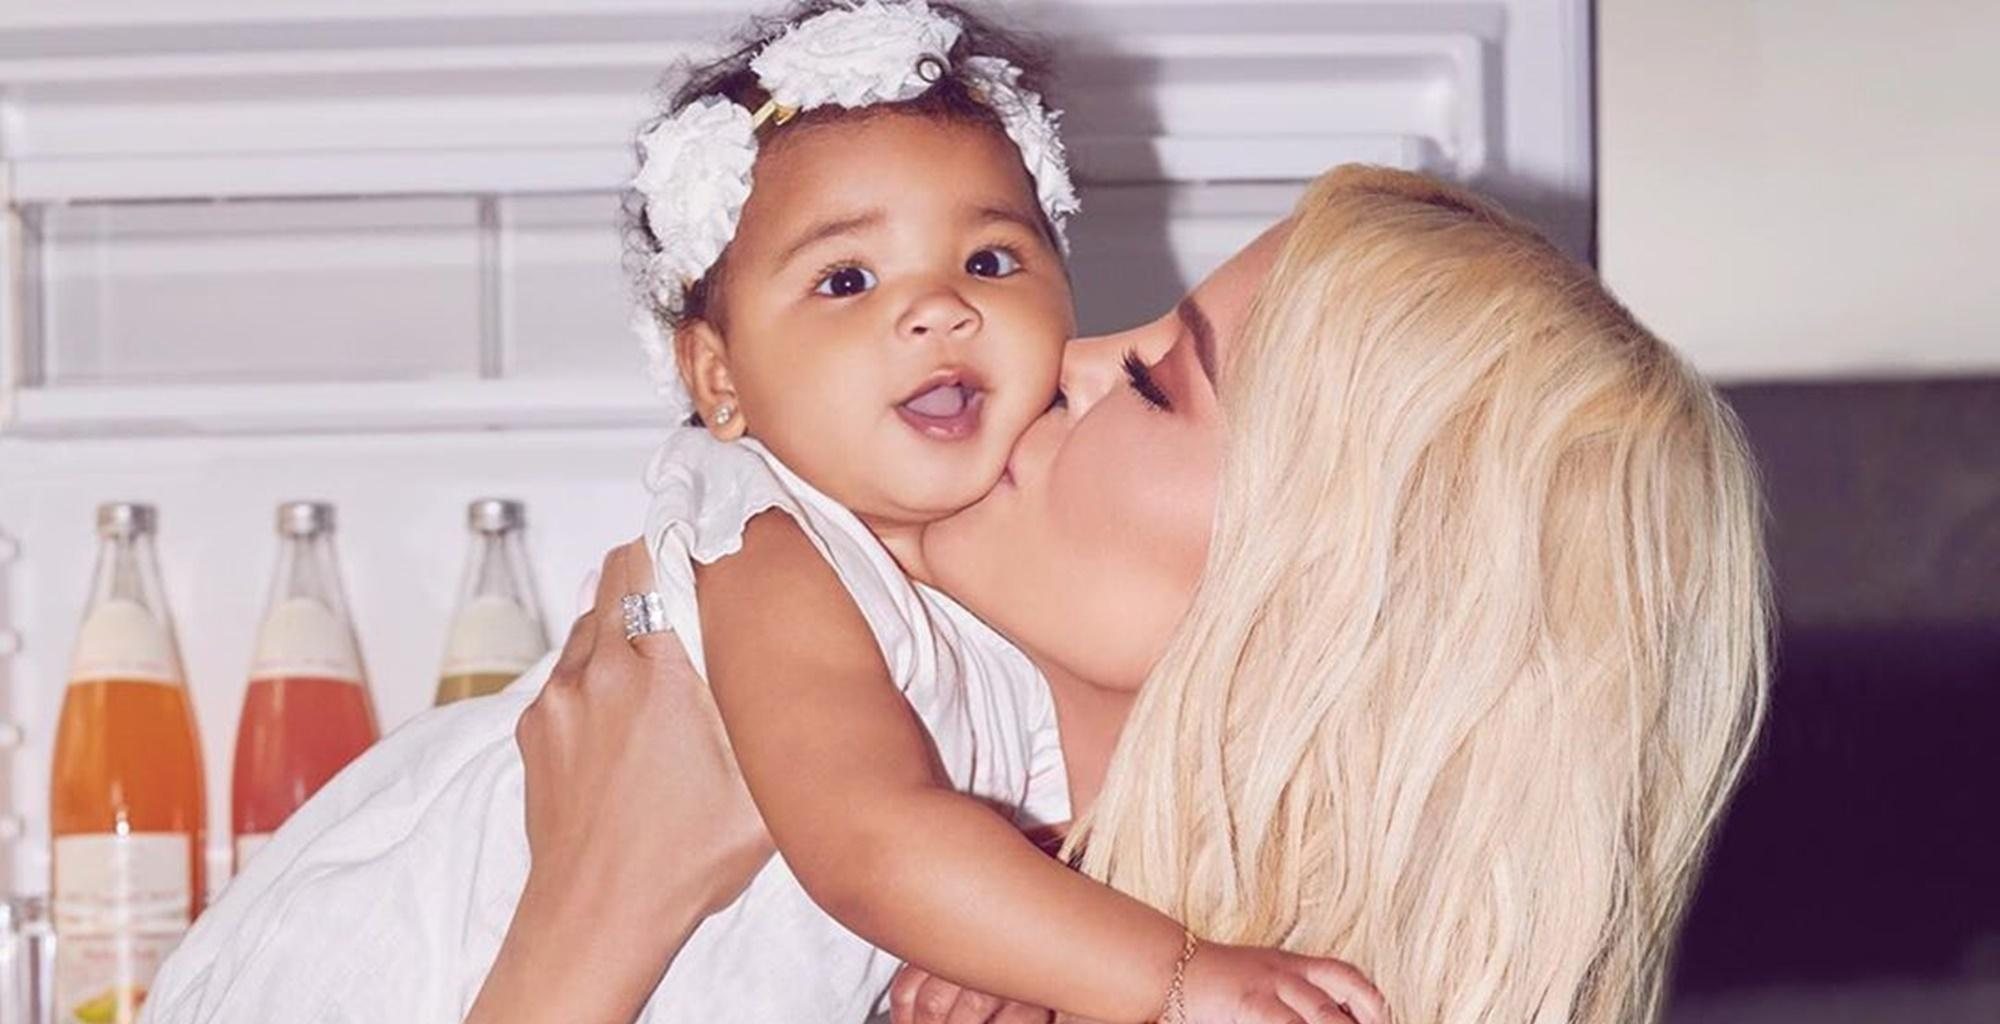 Khloe Kardashian Seems Radiant In Latest Photos With Baby True As She Deals With Lamar Odom's Shocking Revelations About Their Failed Marriage -- Here Is Where Fans Think She Is Finding The Strength To Carry On, Just Like With The Tristan Thompson Cheating Scandal